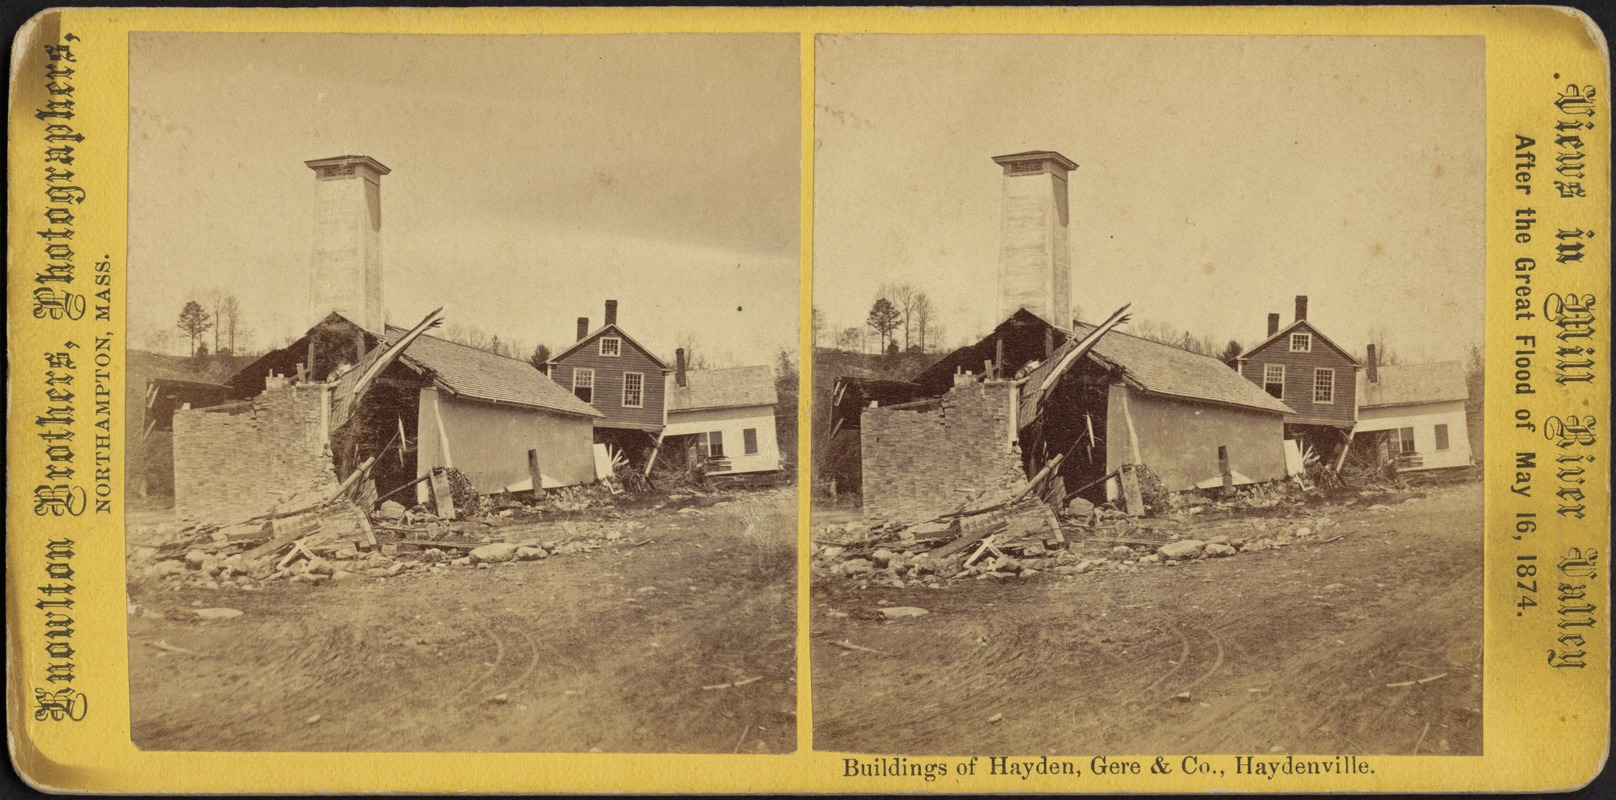 Buildings of Hayden, Gere & Co., Haydenville